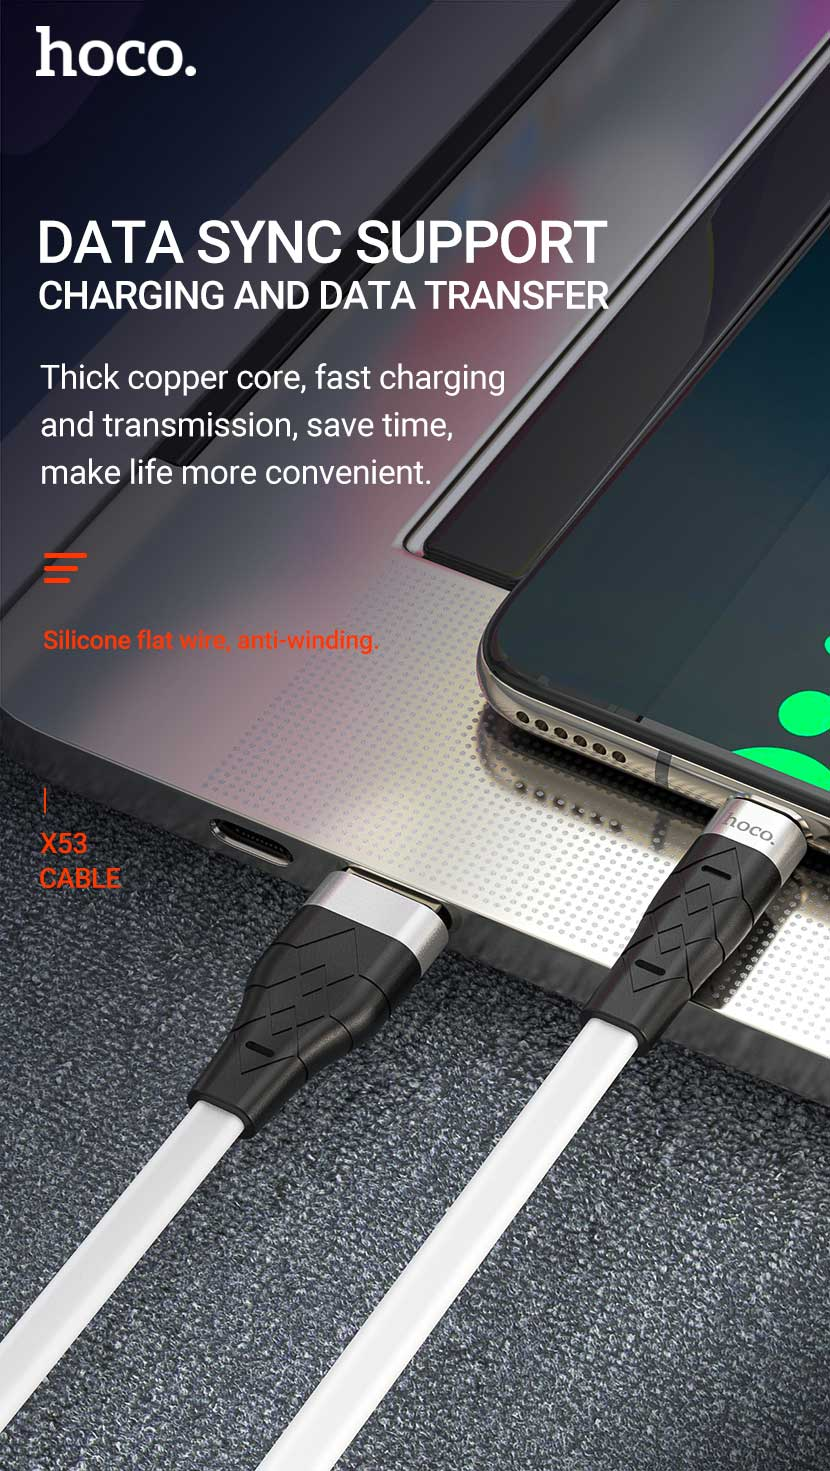 hoco news x53 angel silicone charging data cable sync en